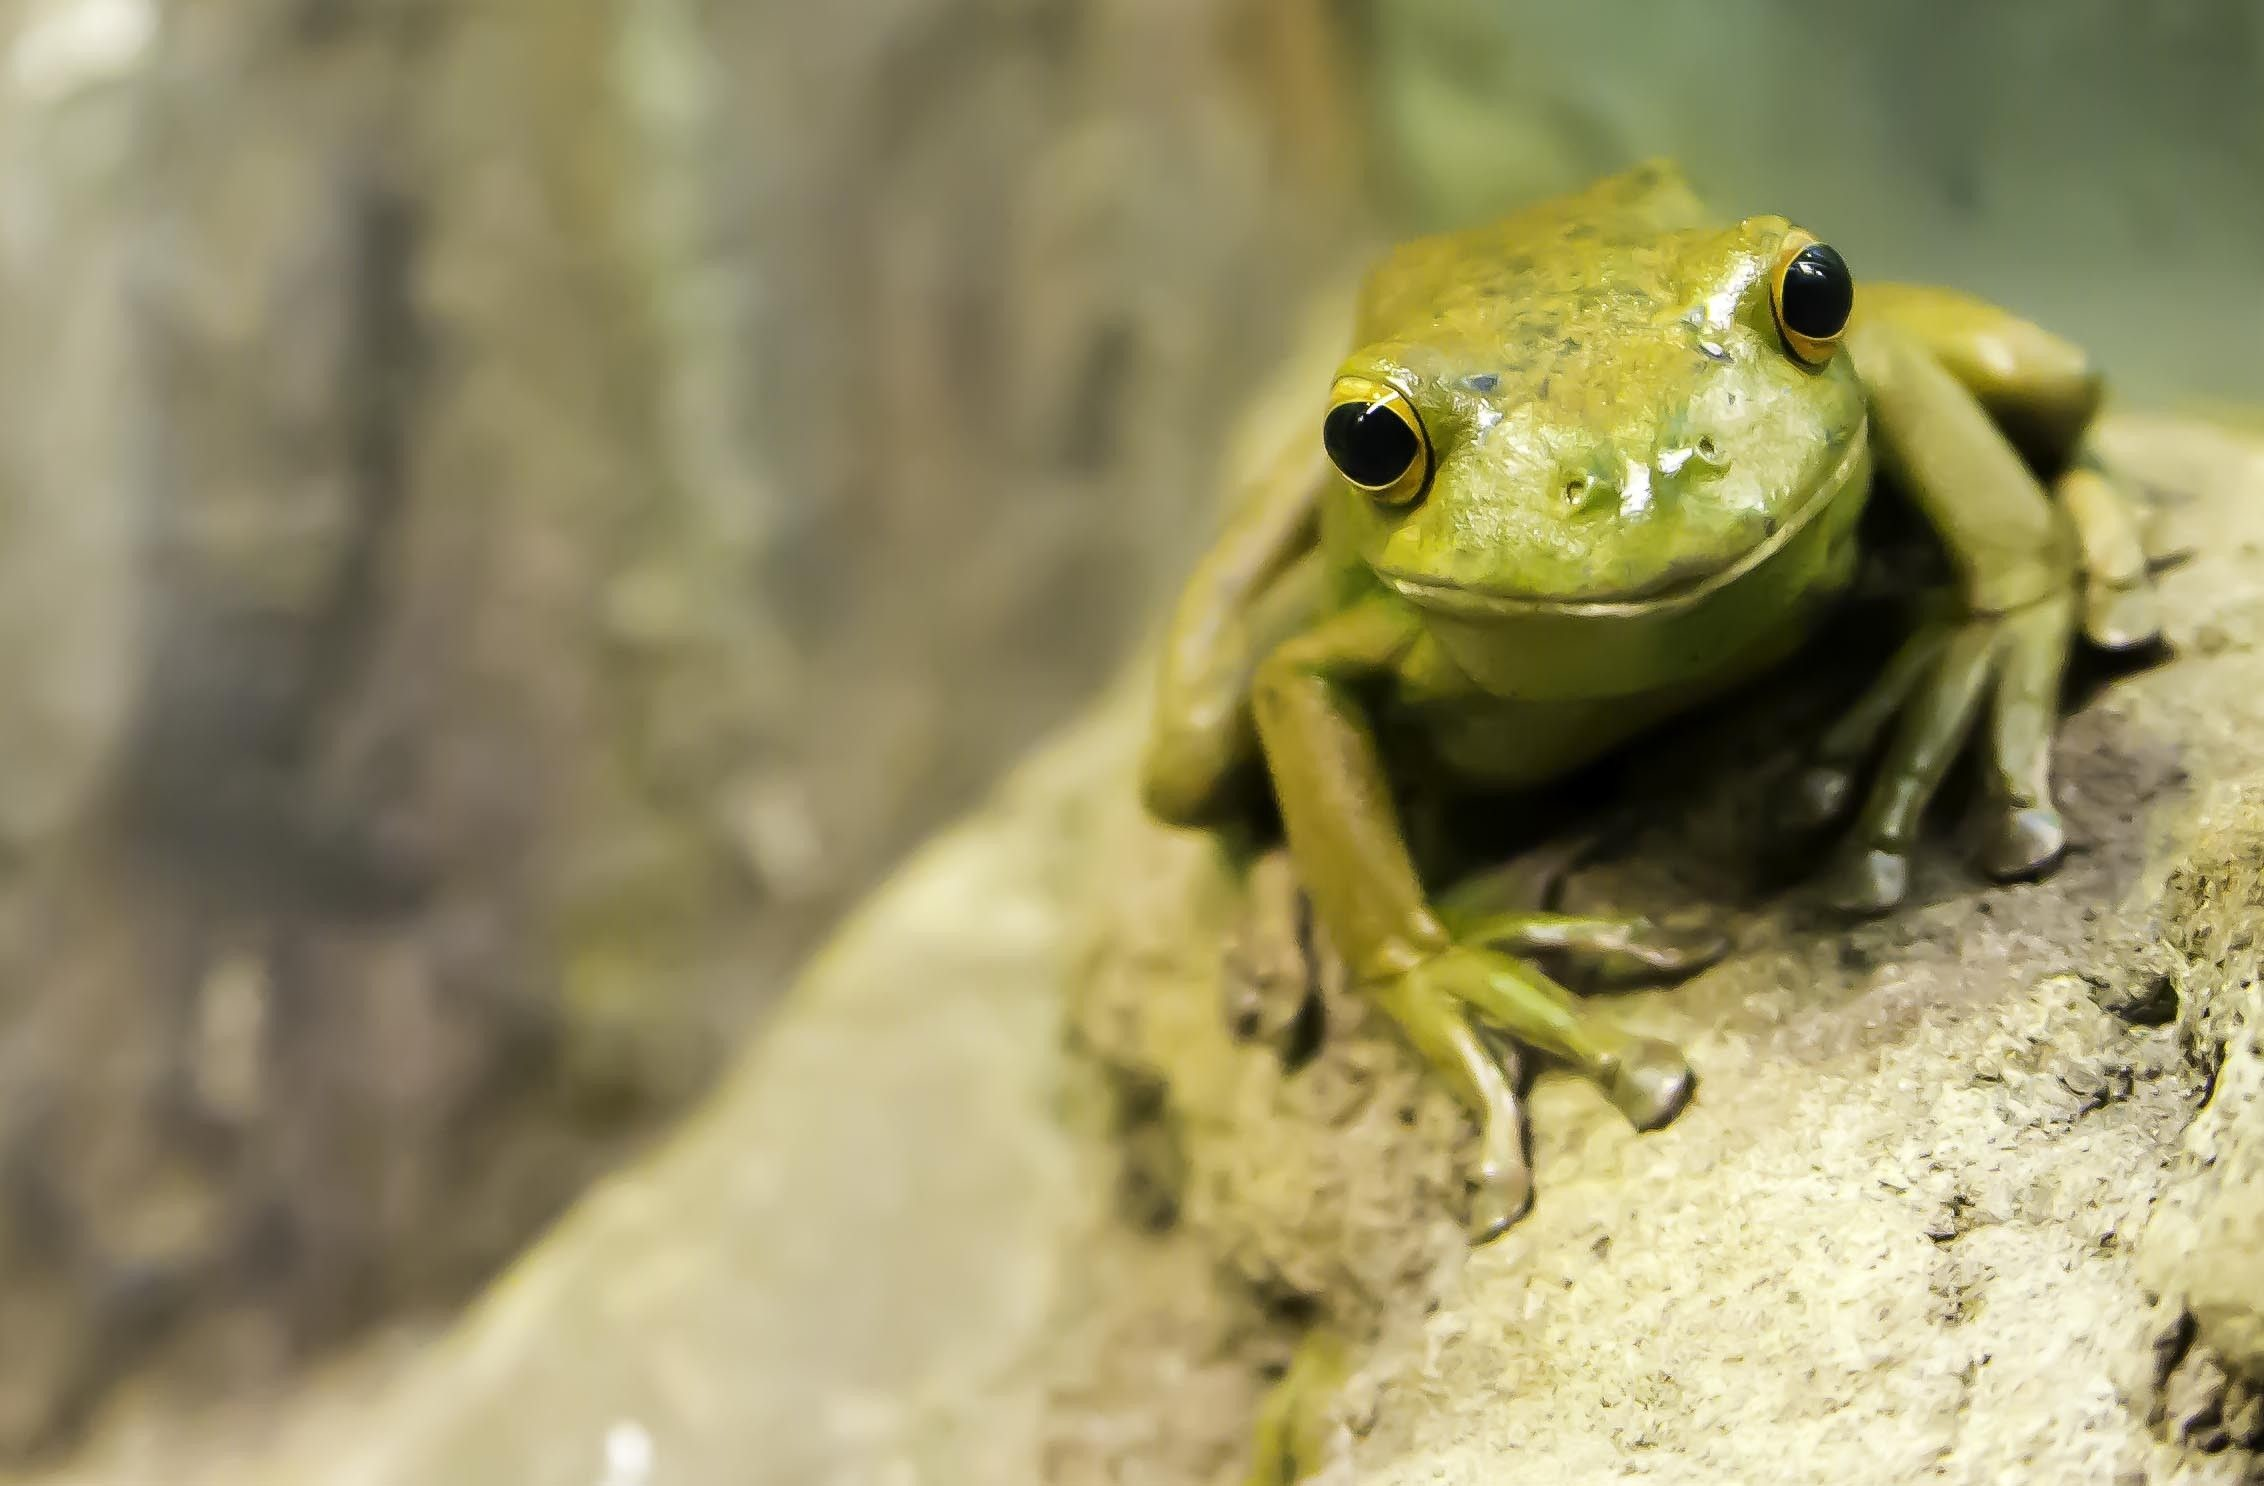 Res: 2264x1486, tree frog amphibian wallpaper download full free high definition